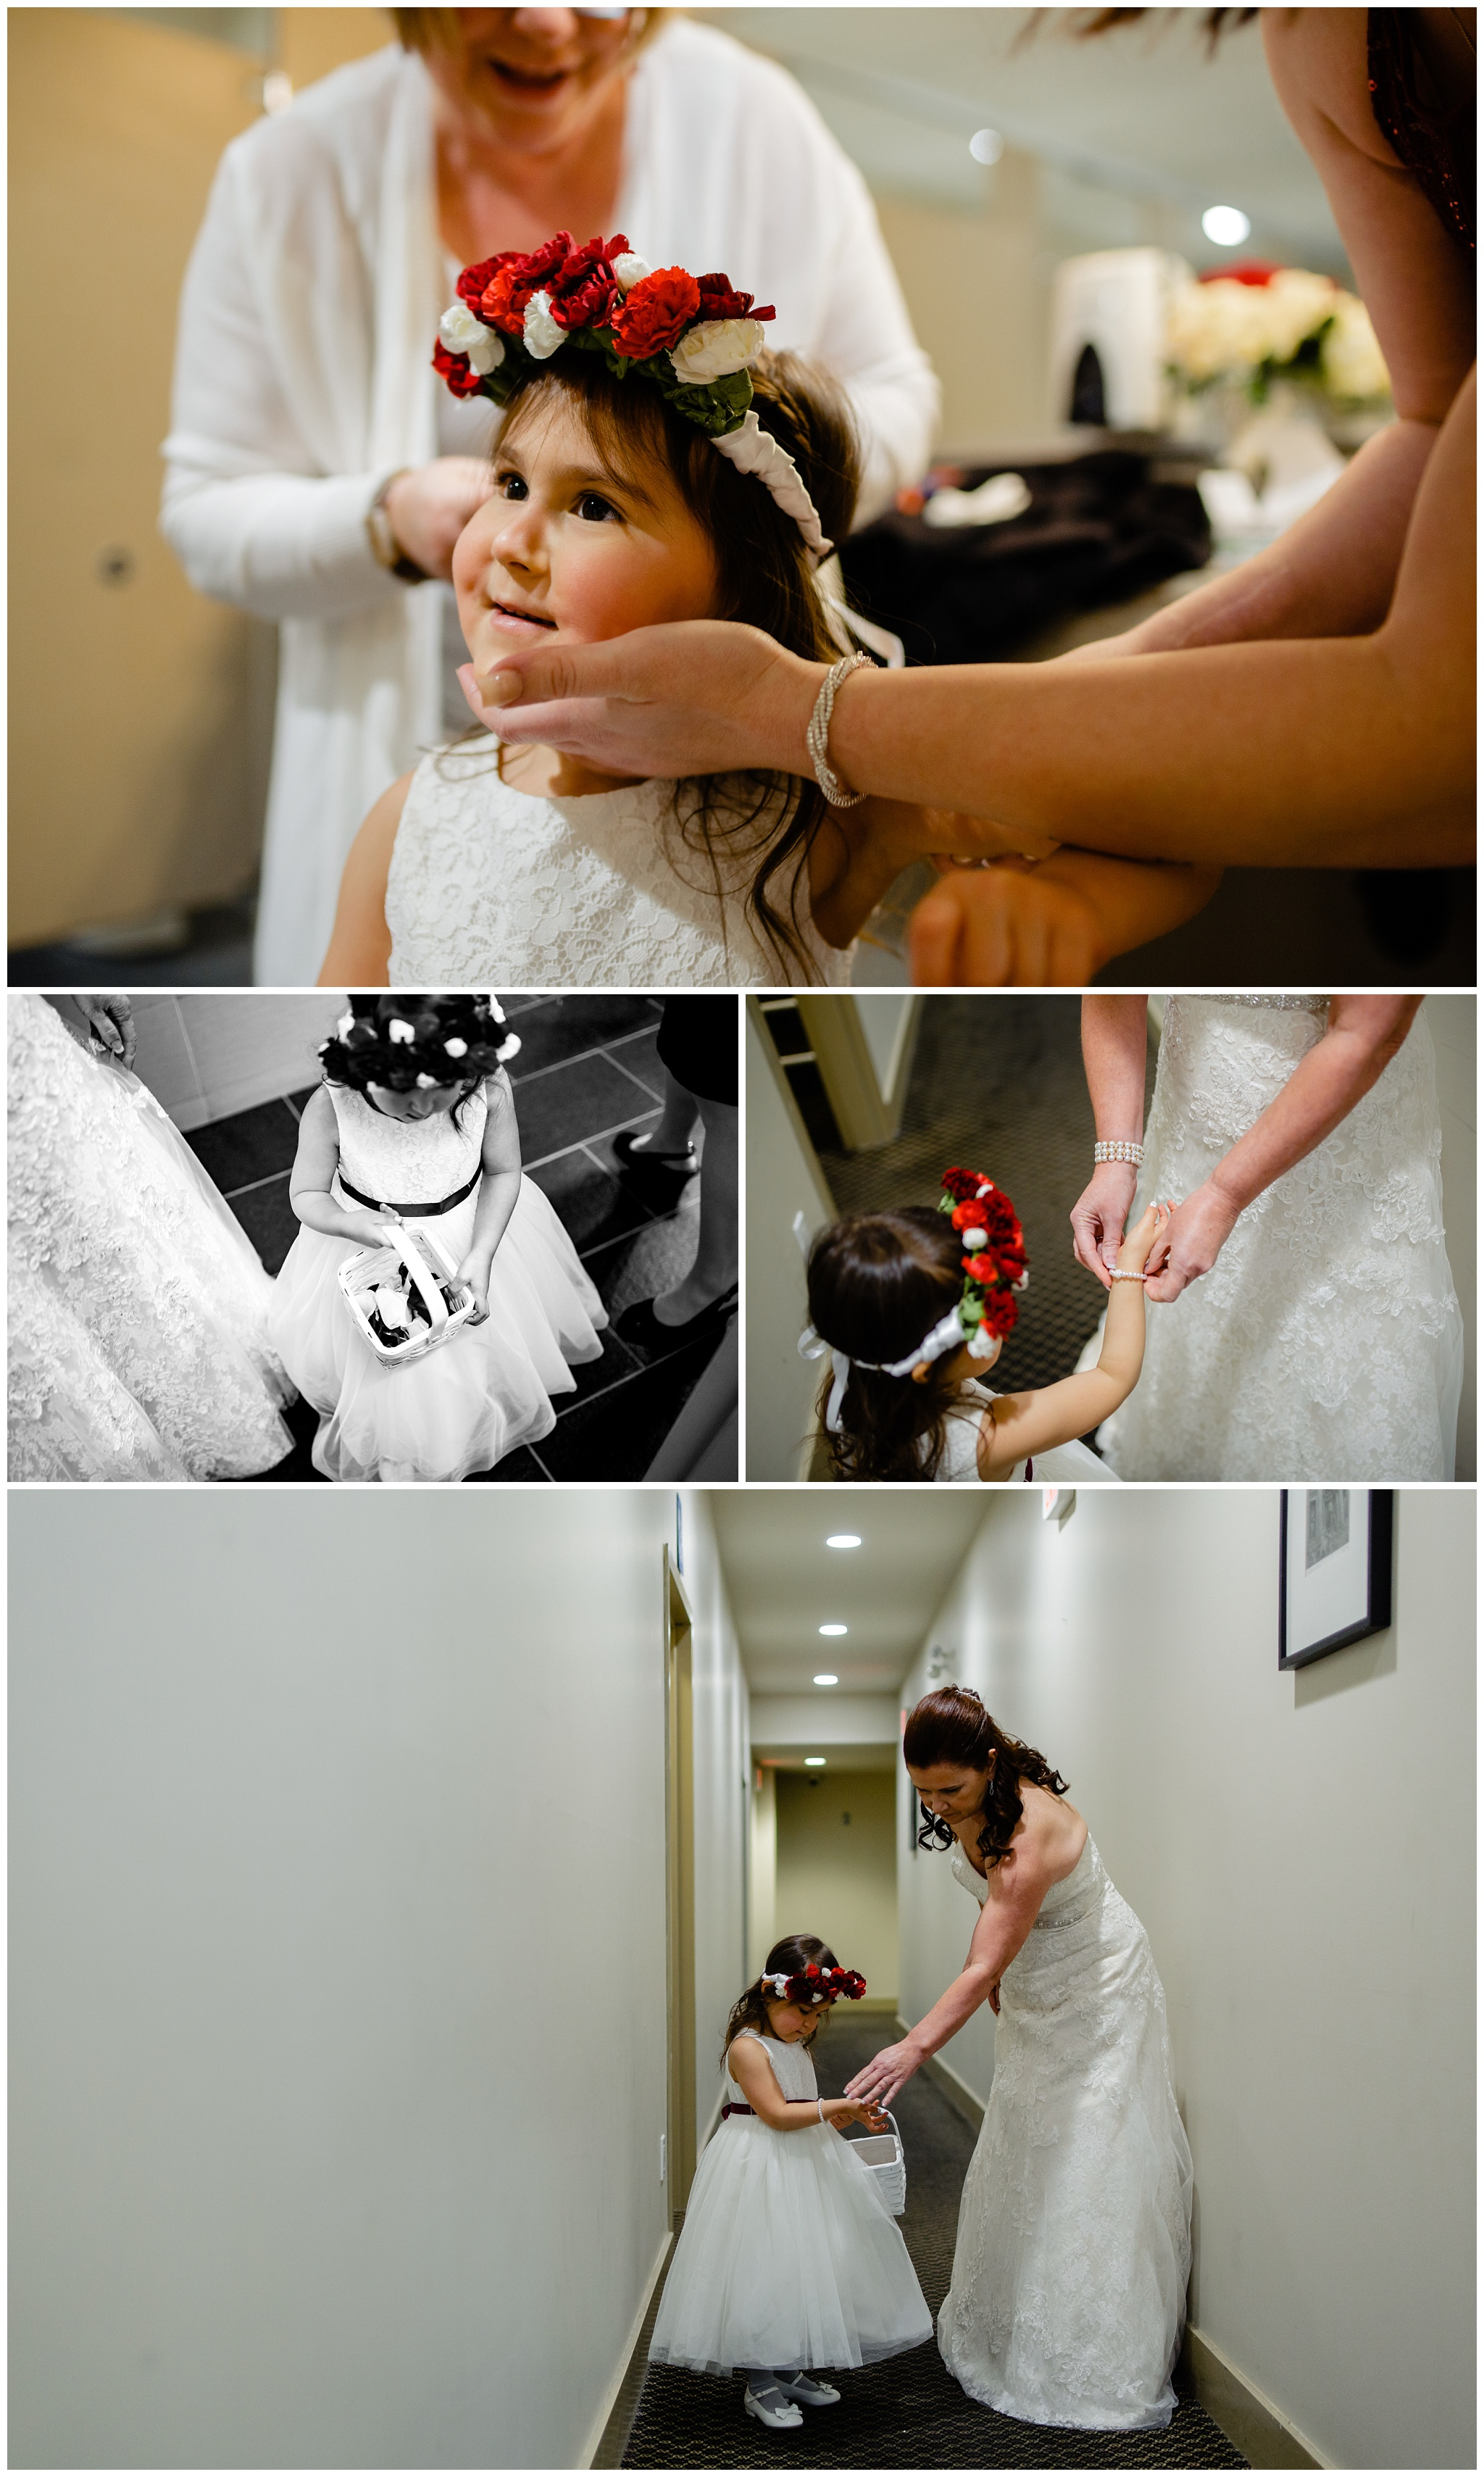 White Rock Intimate Wedding 5 Star Catering Venue Surrey BC Middle Aged Couple_0001.jpg